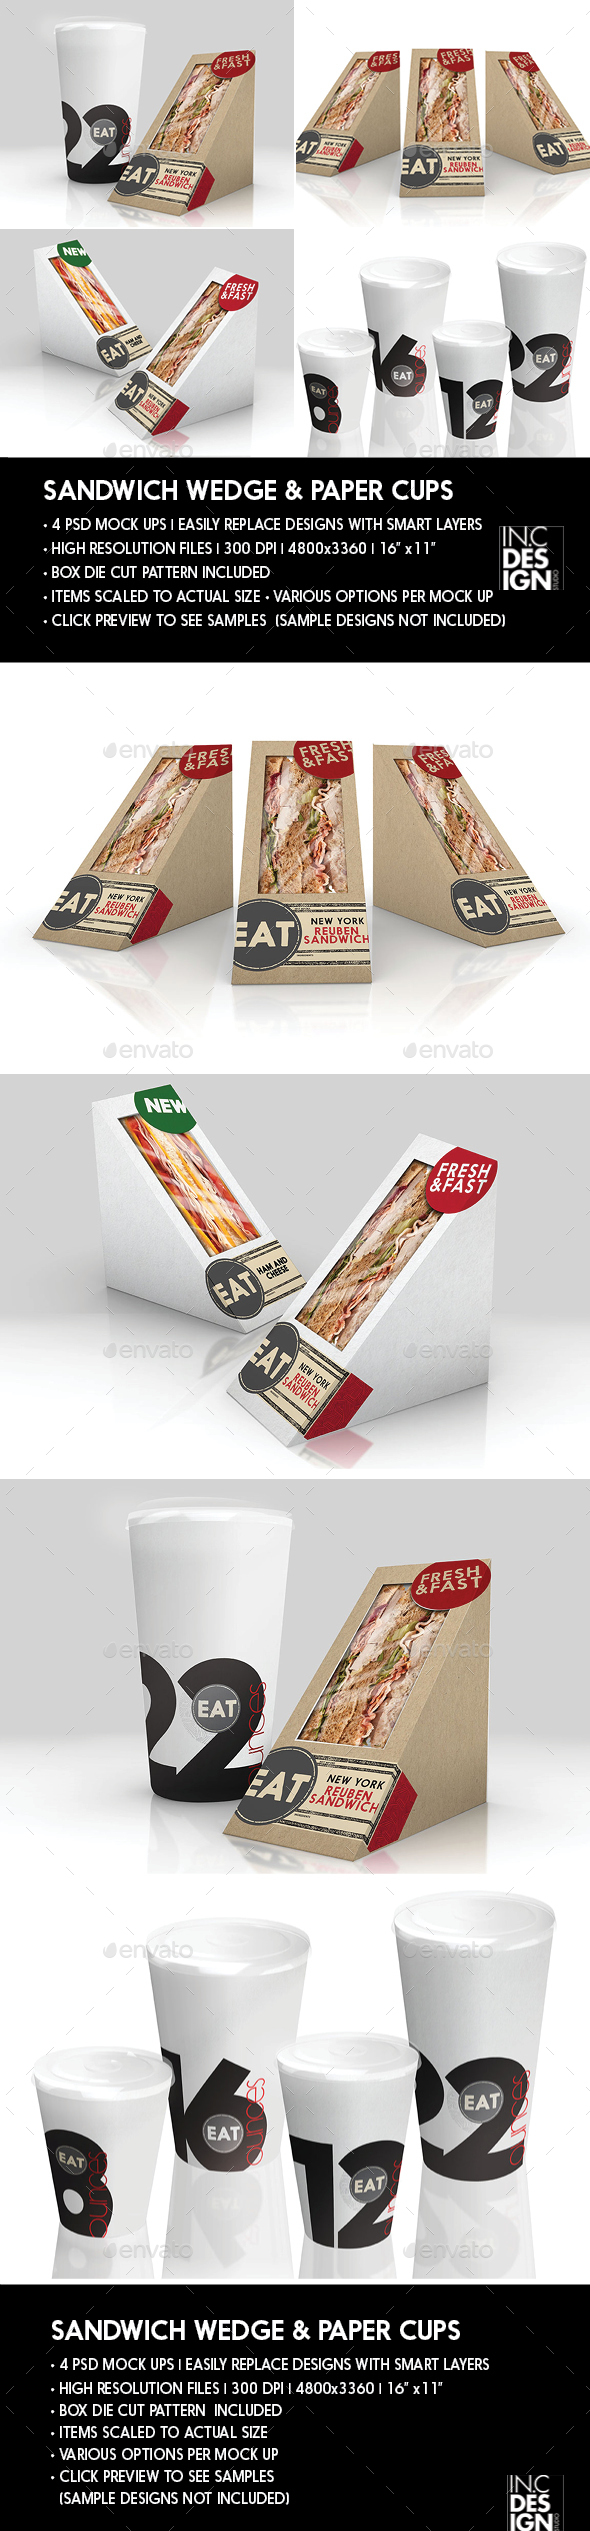 Packaging  Mock Up Sandwich Wedge Box and Soda Paper Cup Set - Product Mock-Ups Graphics